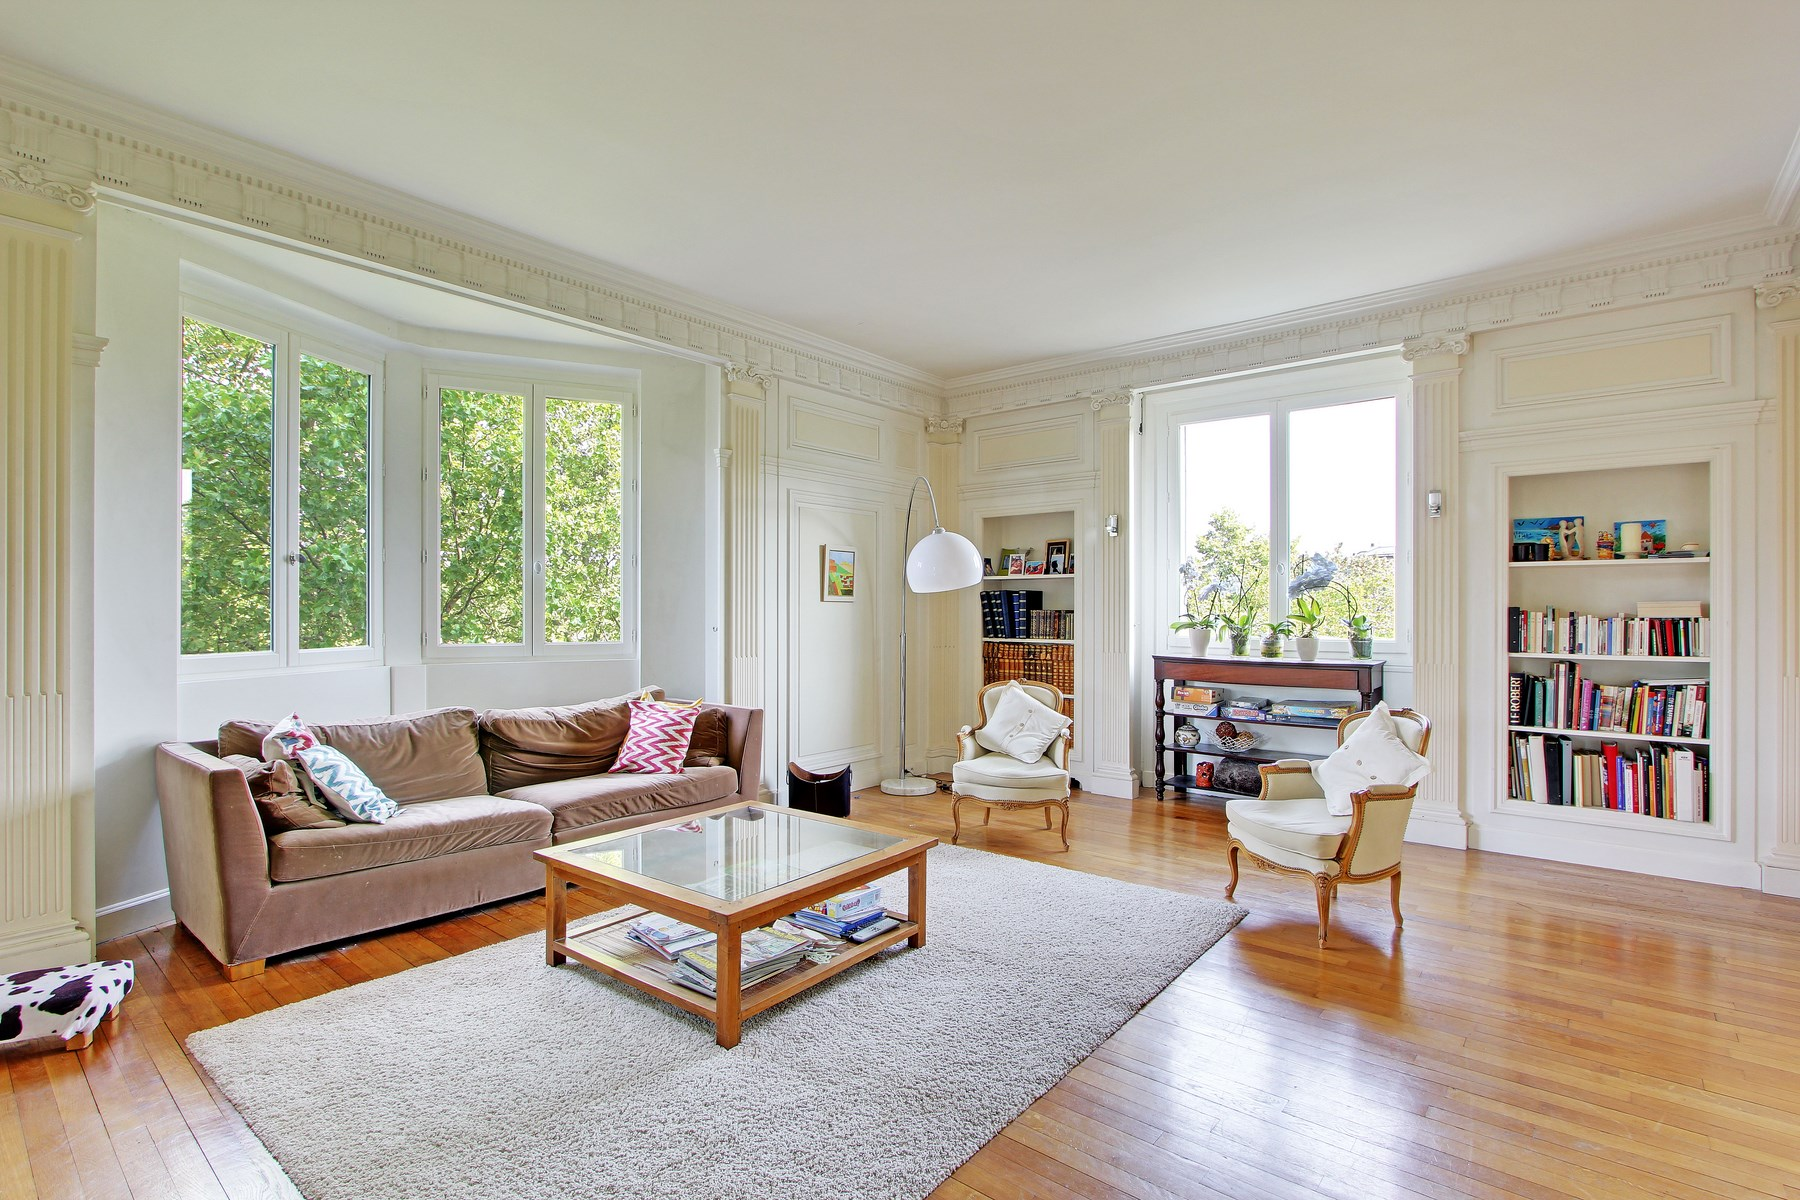 Apartment for Sale at Apartment - Chateau Neuilly, Ile-De-France 92200 France